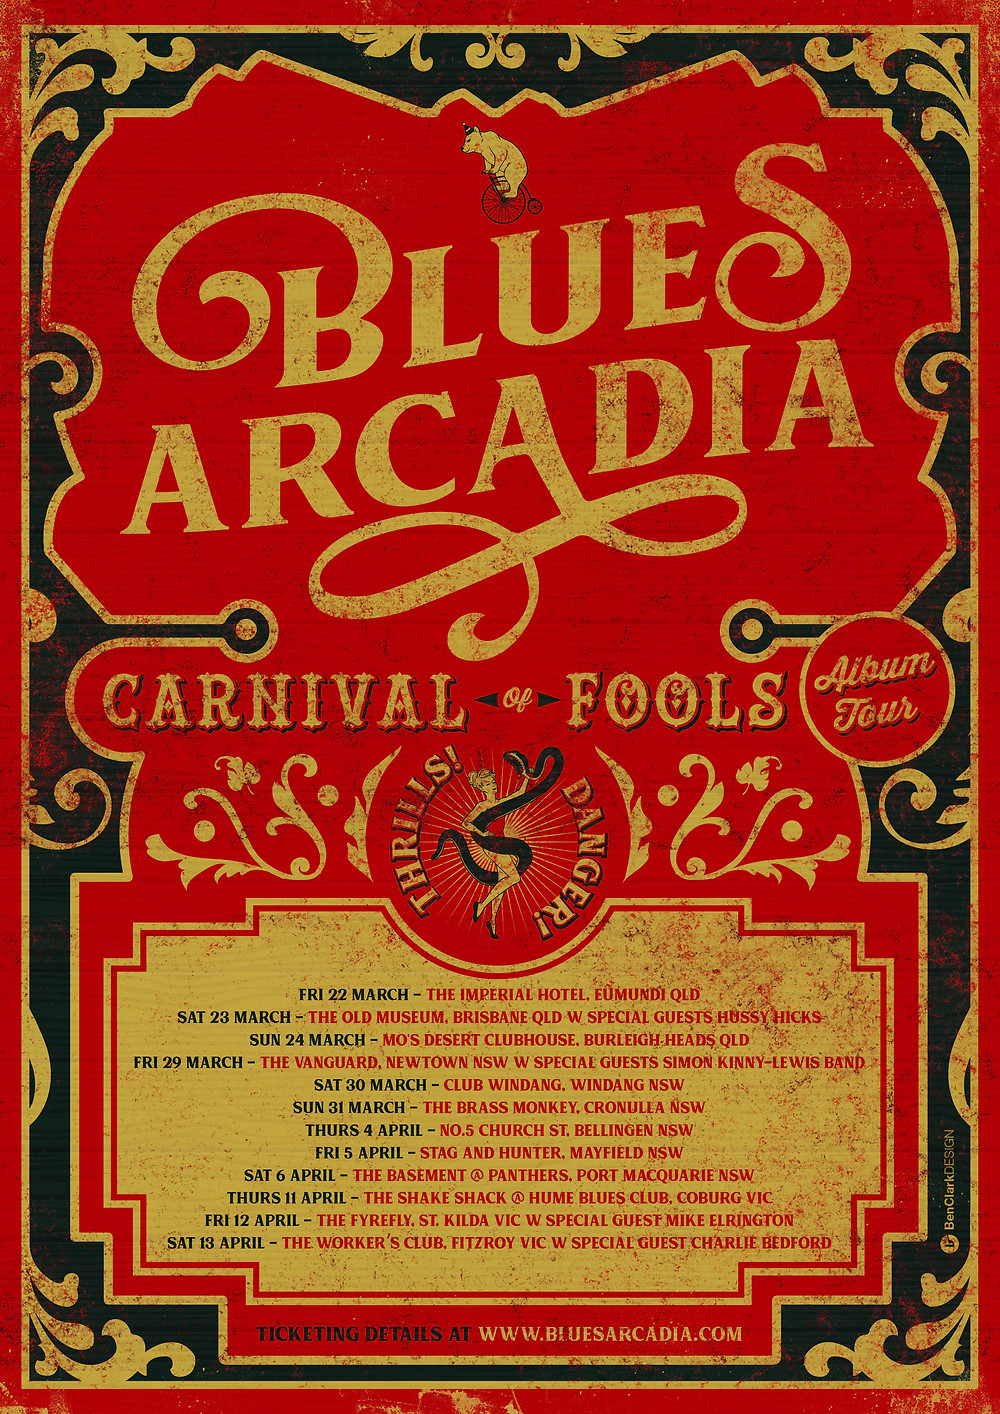 carnival of fools album release and tour dates